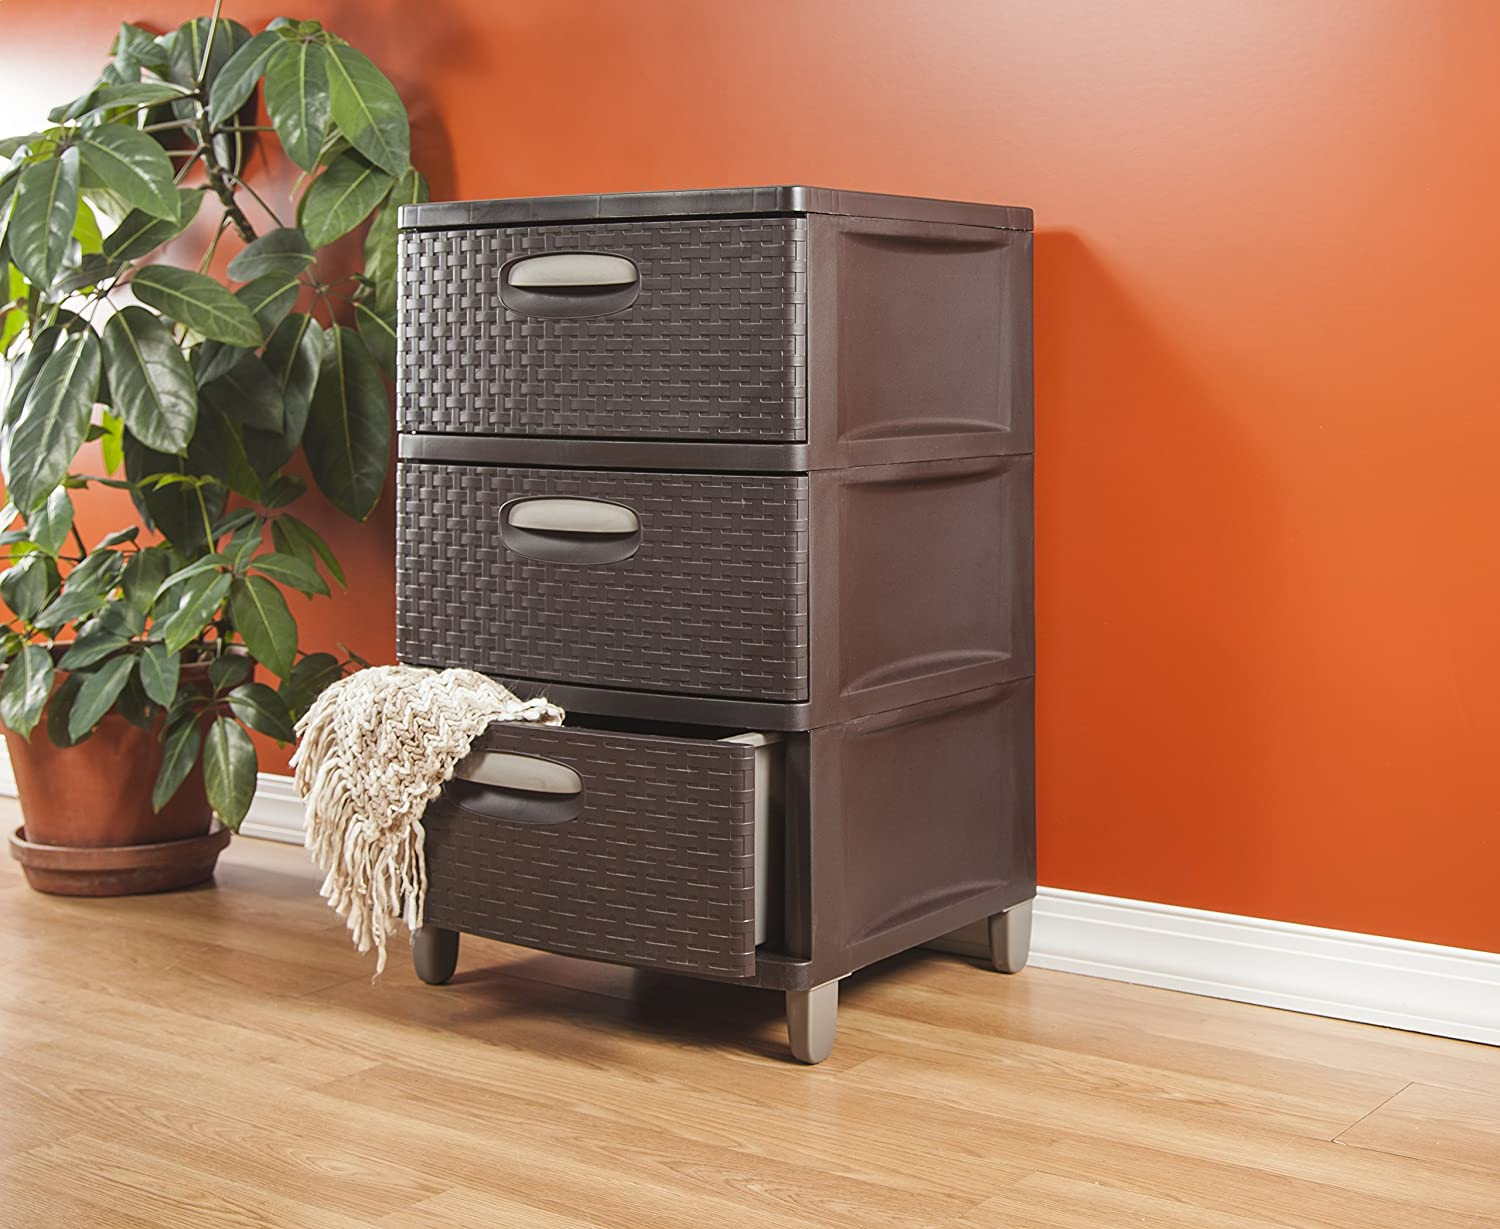 Amazon.com STERILITE 01986P01 3 Weave Drawer Unit Espresso with Driftwood Handles and Legs 1-Pack Home u0026 Kitchen & Amazon.com: STERILITE 01986P01 3 Weave Drawer Unit Espresso with ...